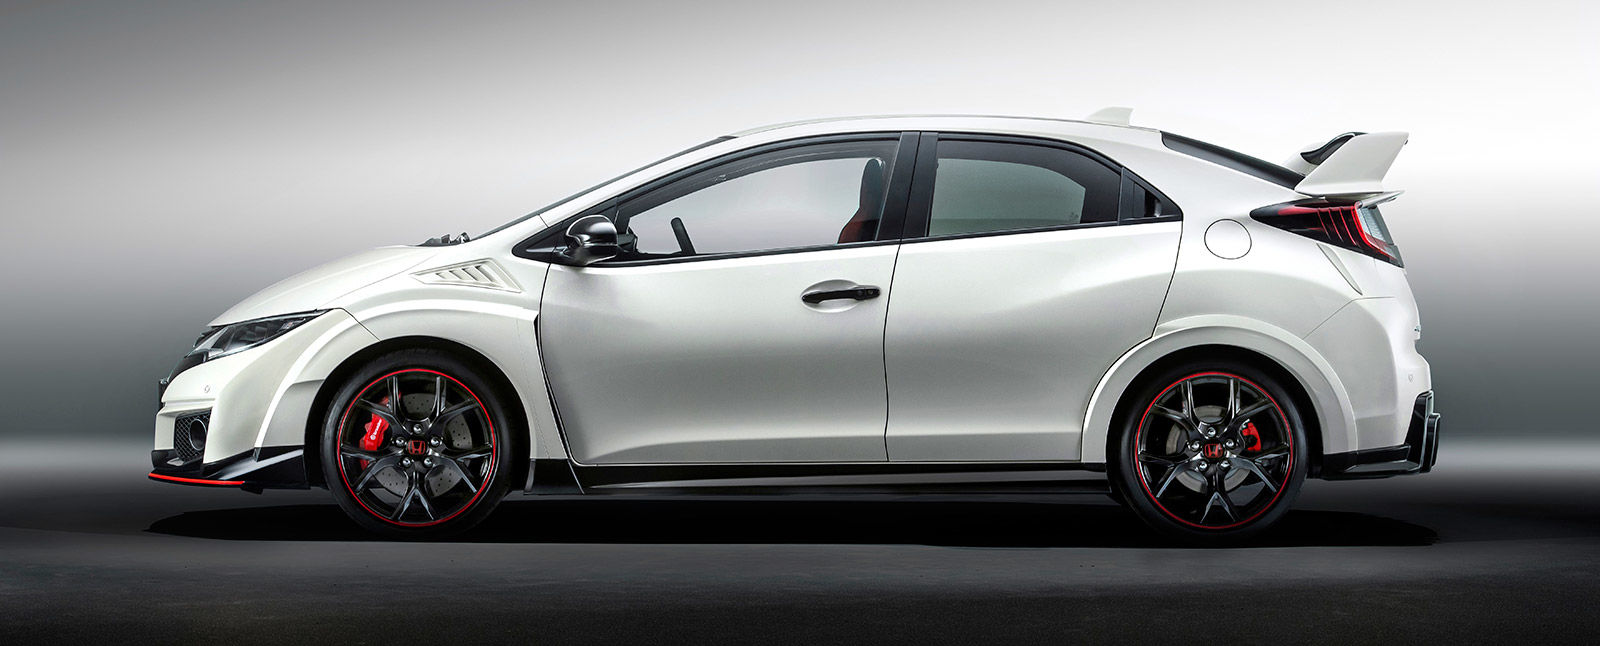 As mentioned white is all the rage currently and honda has been racing white cars for decades the latest civic type r is offered in championship white and